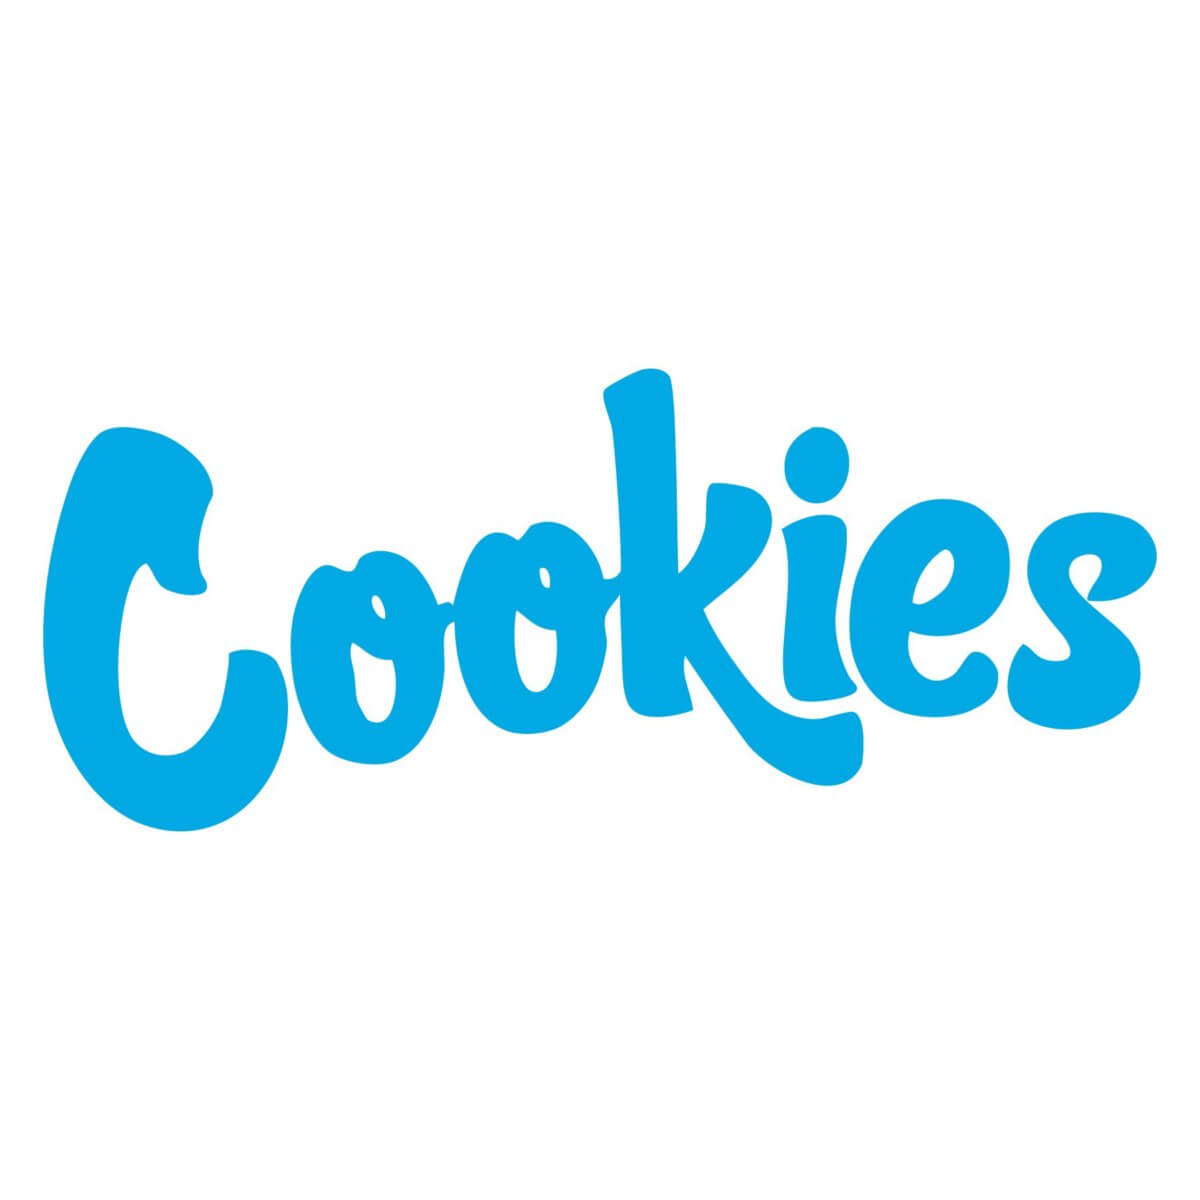 Cookies and WebberWild Join Forces to Launch Cookies U